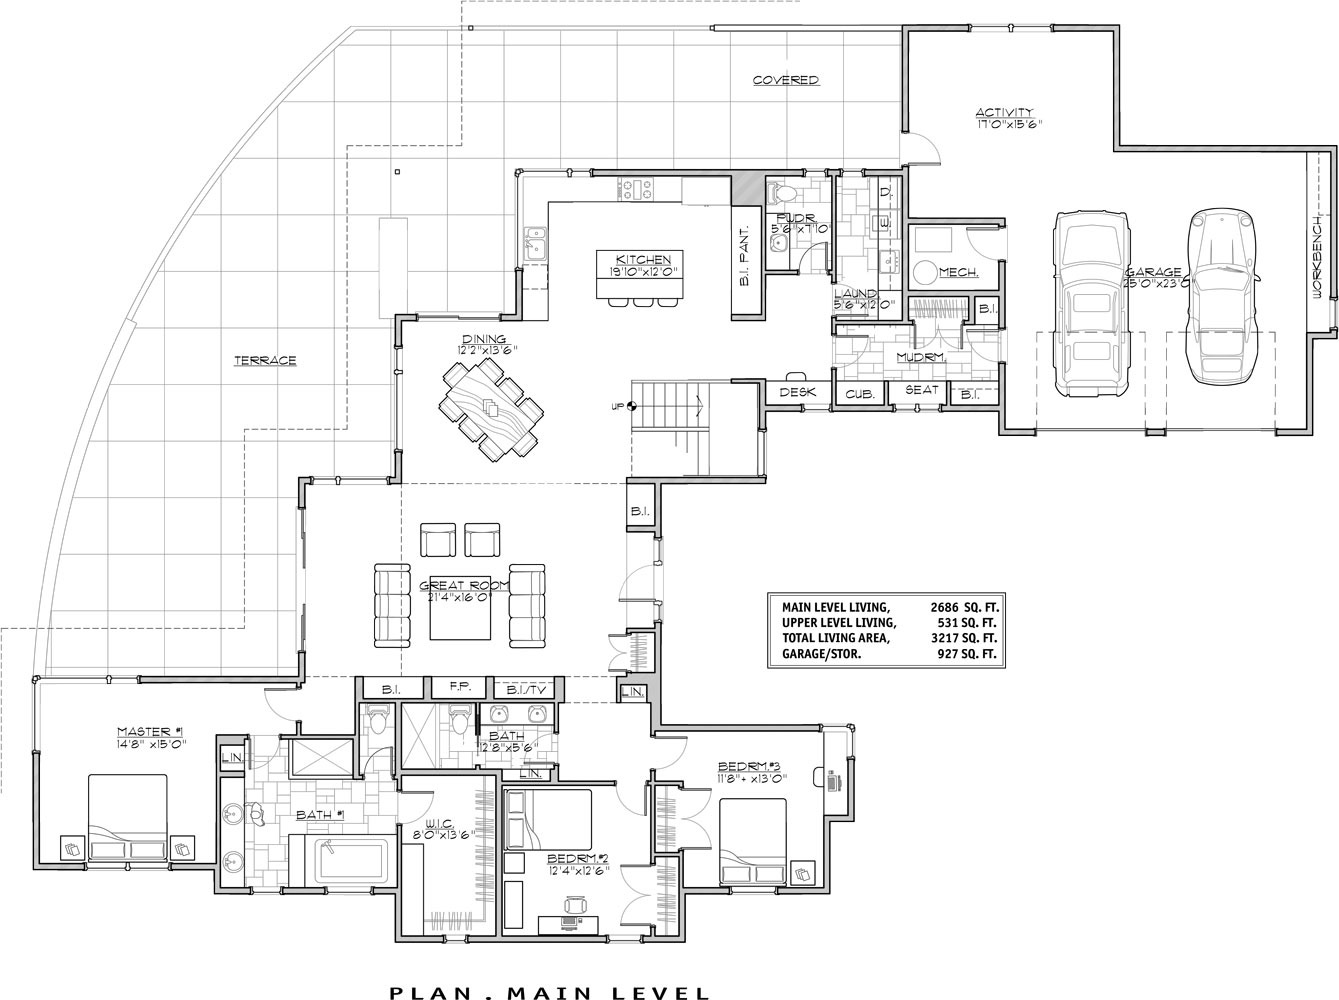 Luxury Contemporary 9044 3 Bedrooms and 3 Baths – Luxury Estate Home Floor Plans